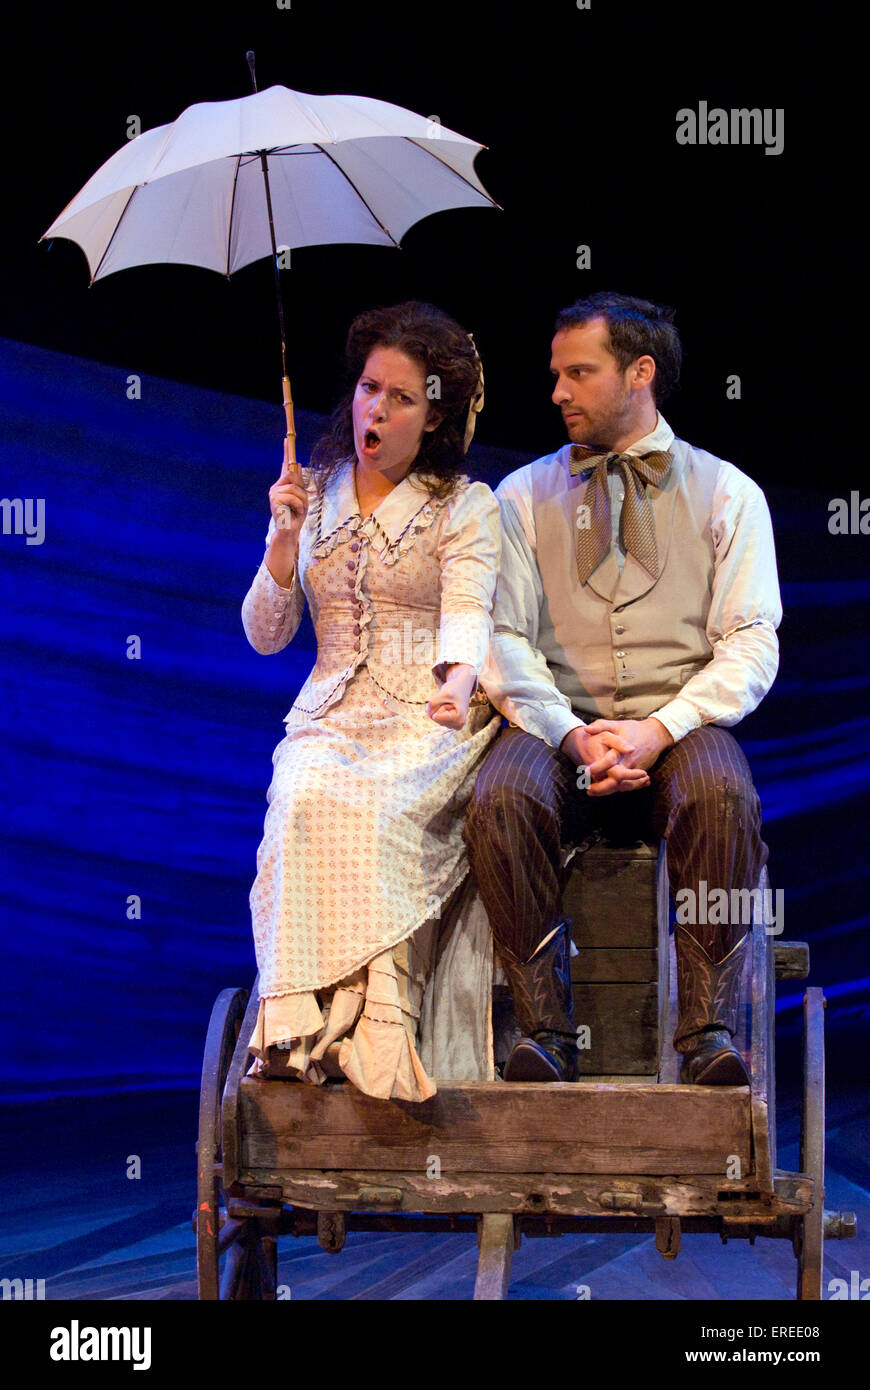 Natalie Casey As Ado Annie And Michael Rouse As Will Parker In Stock Photo Alamy